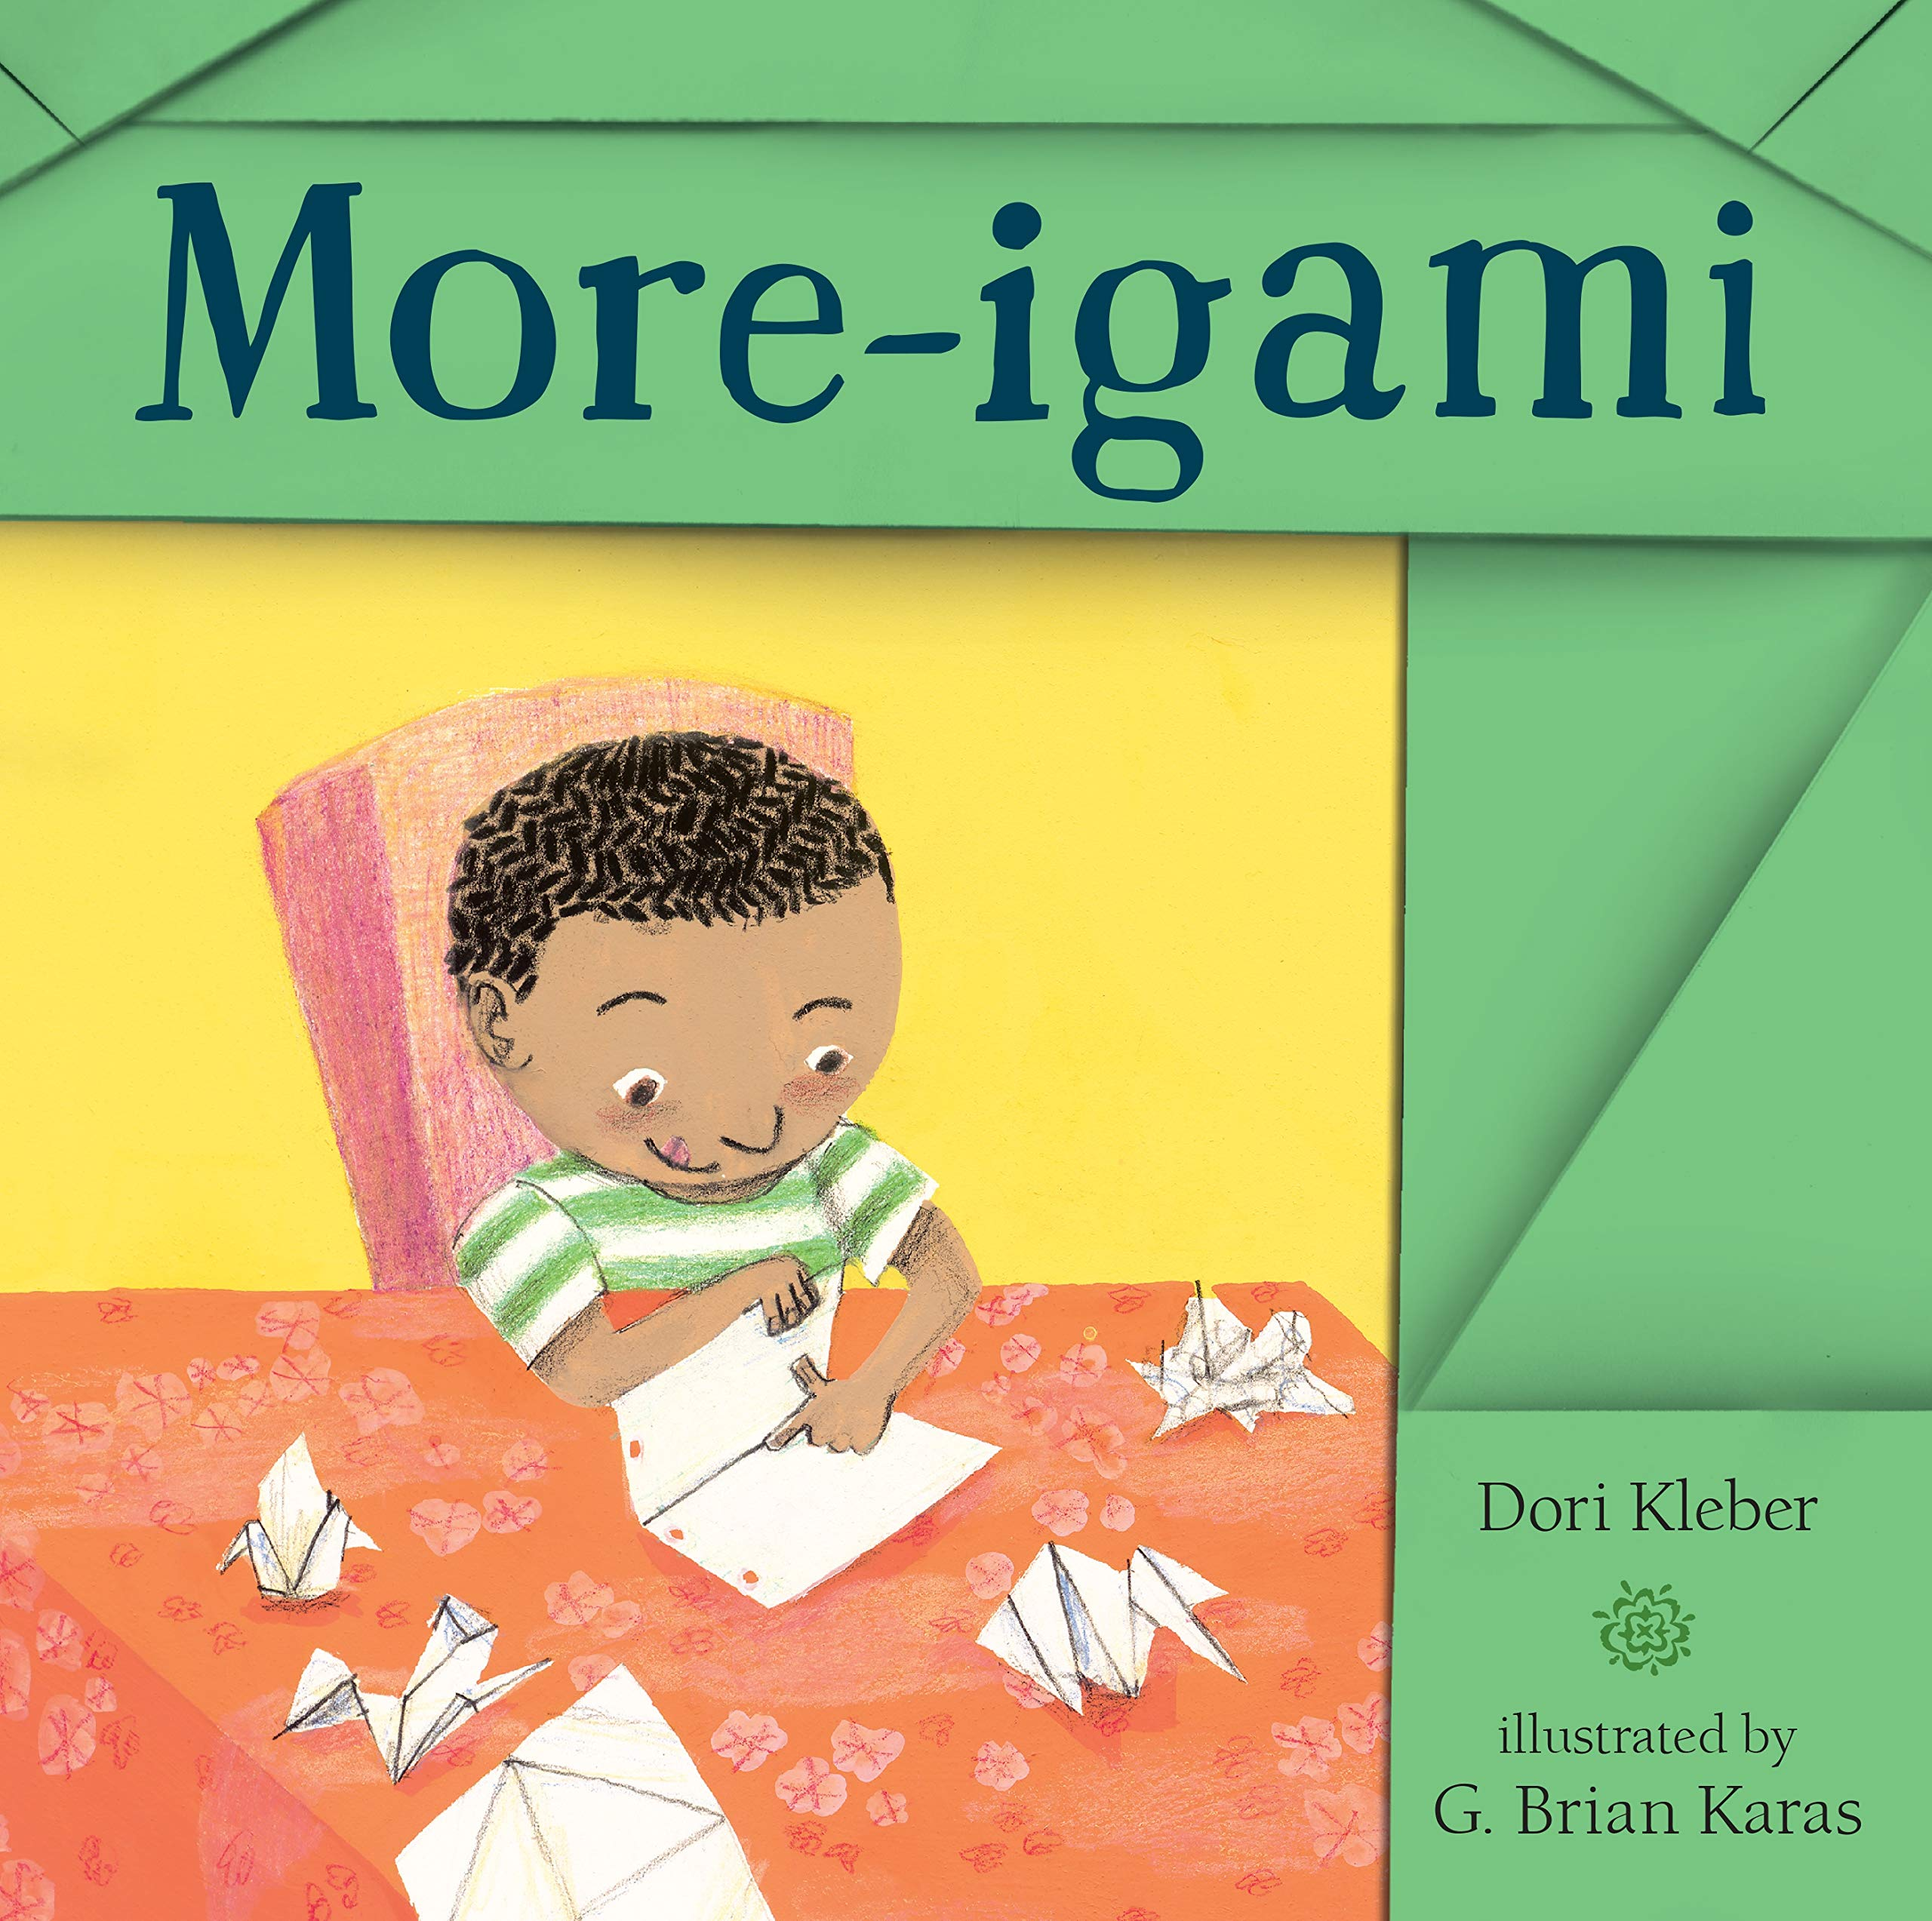 More-igami - Books with Black Protagonists